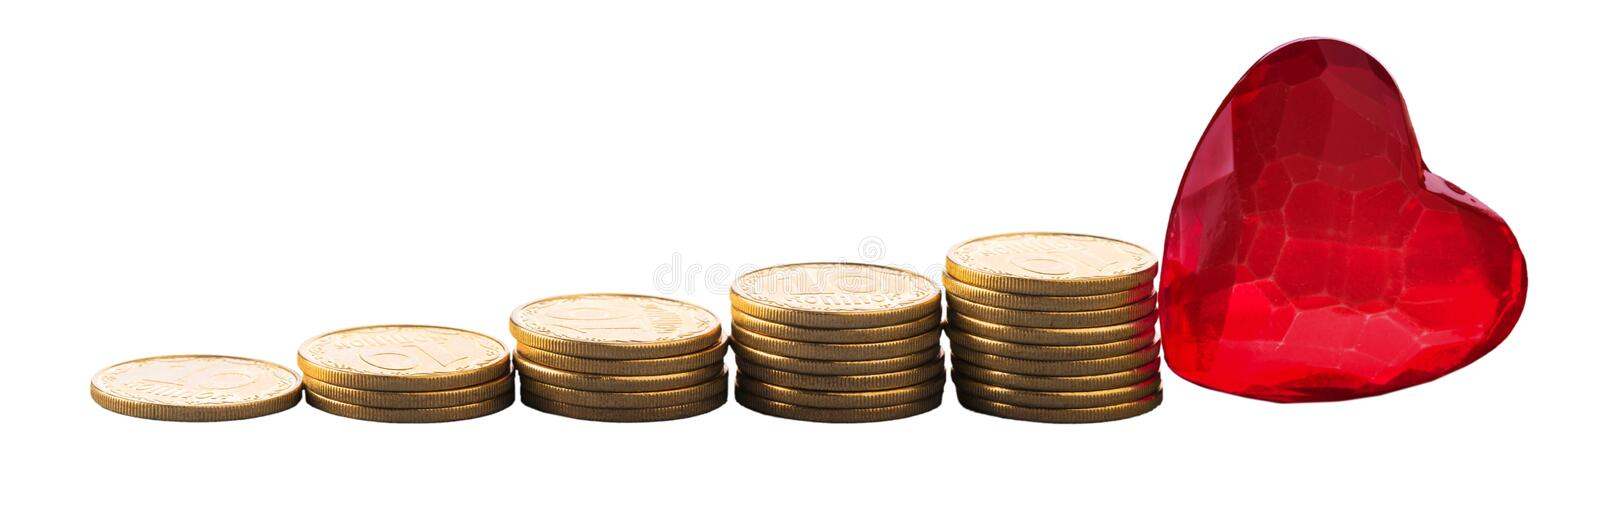 Money. Save growth tax value increase retirement royalty free stock image